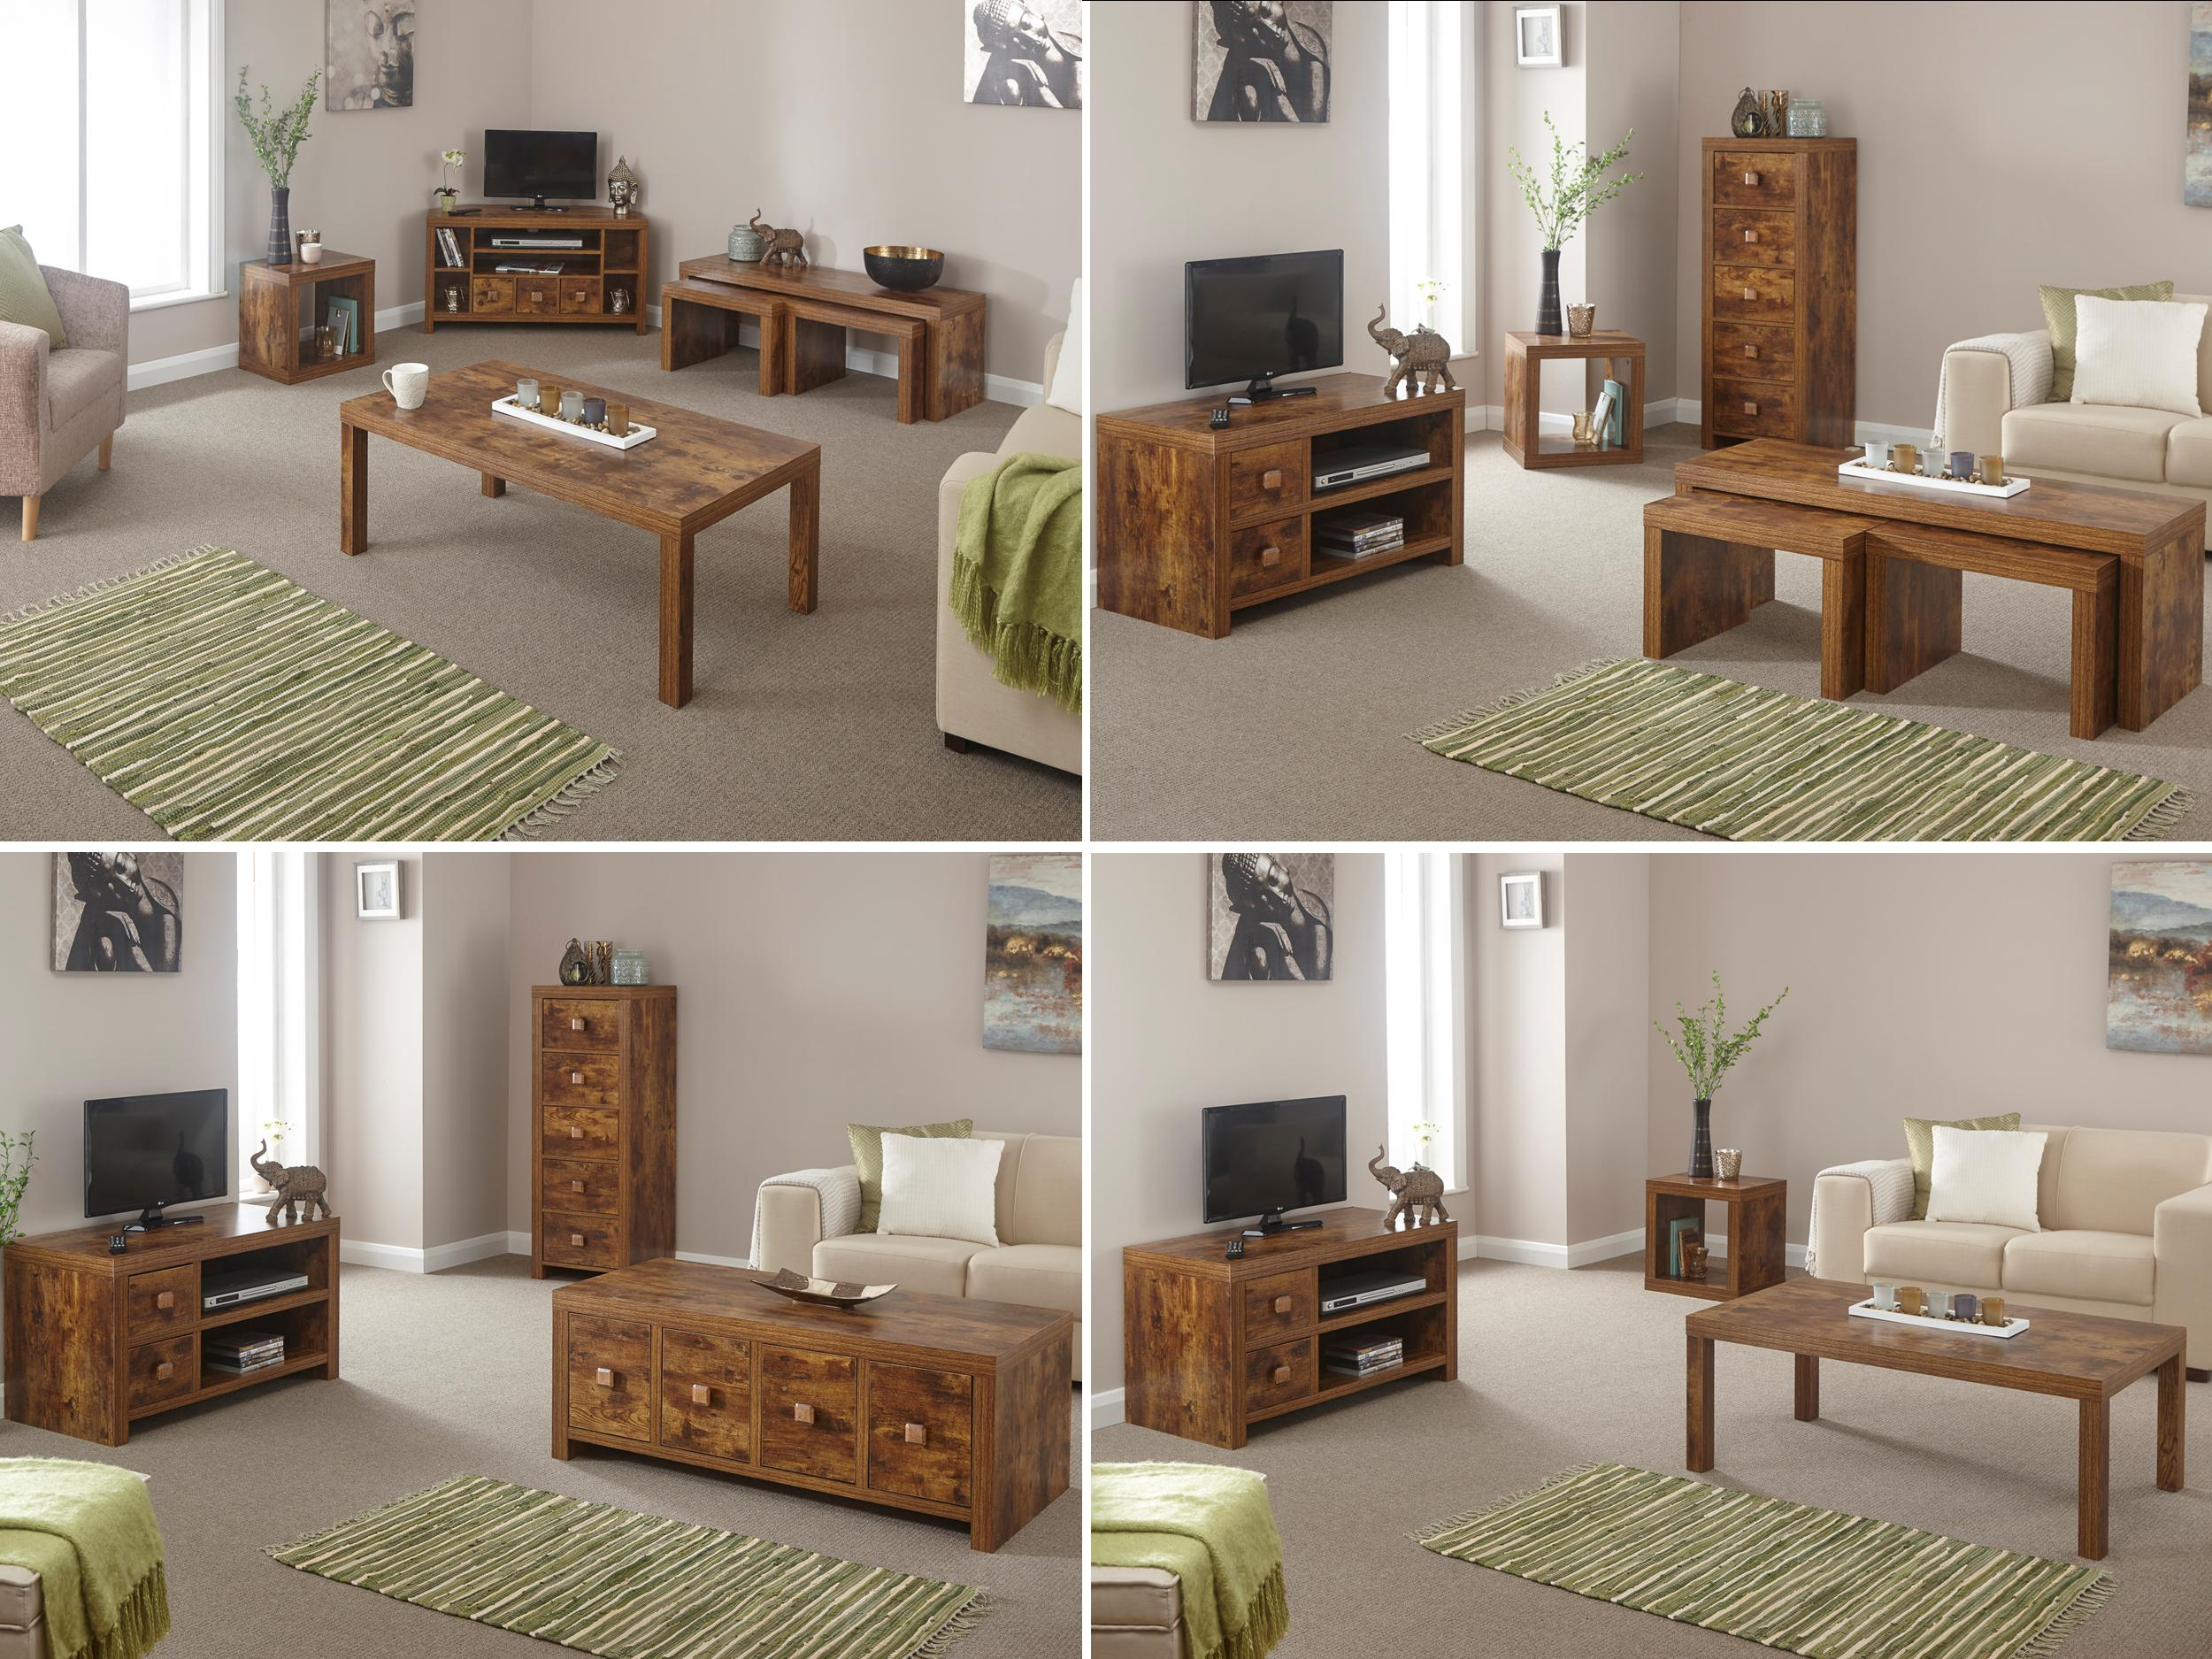 Details about Jakarta Mango Living Room Furniture Range - TV Units Coffee  Table Chests Storage